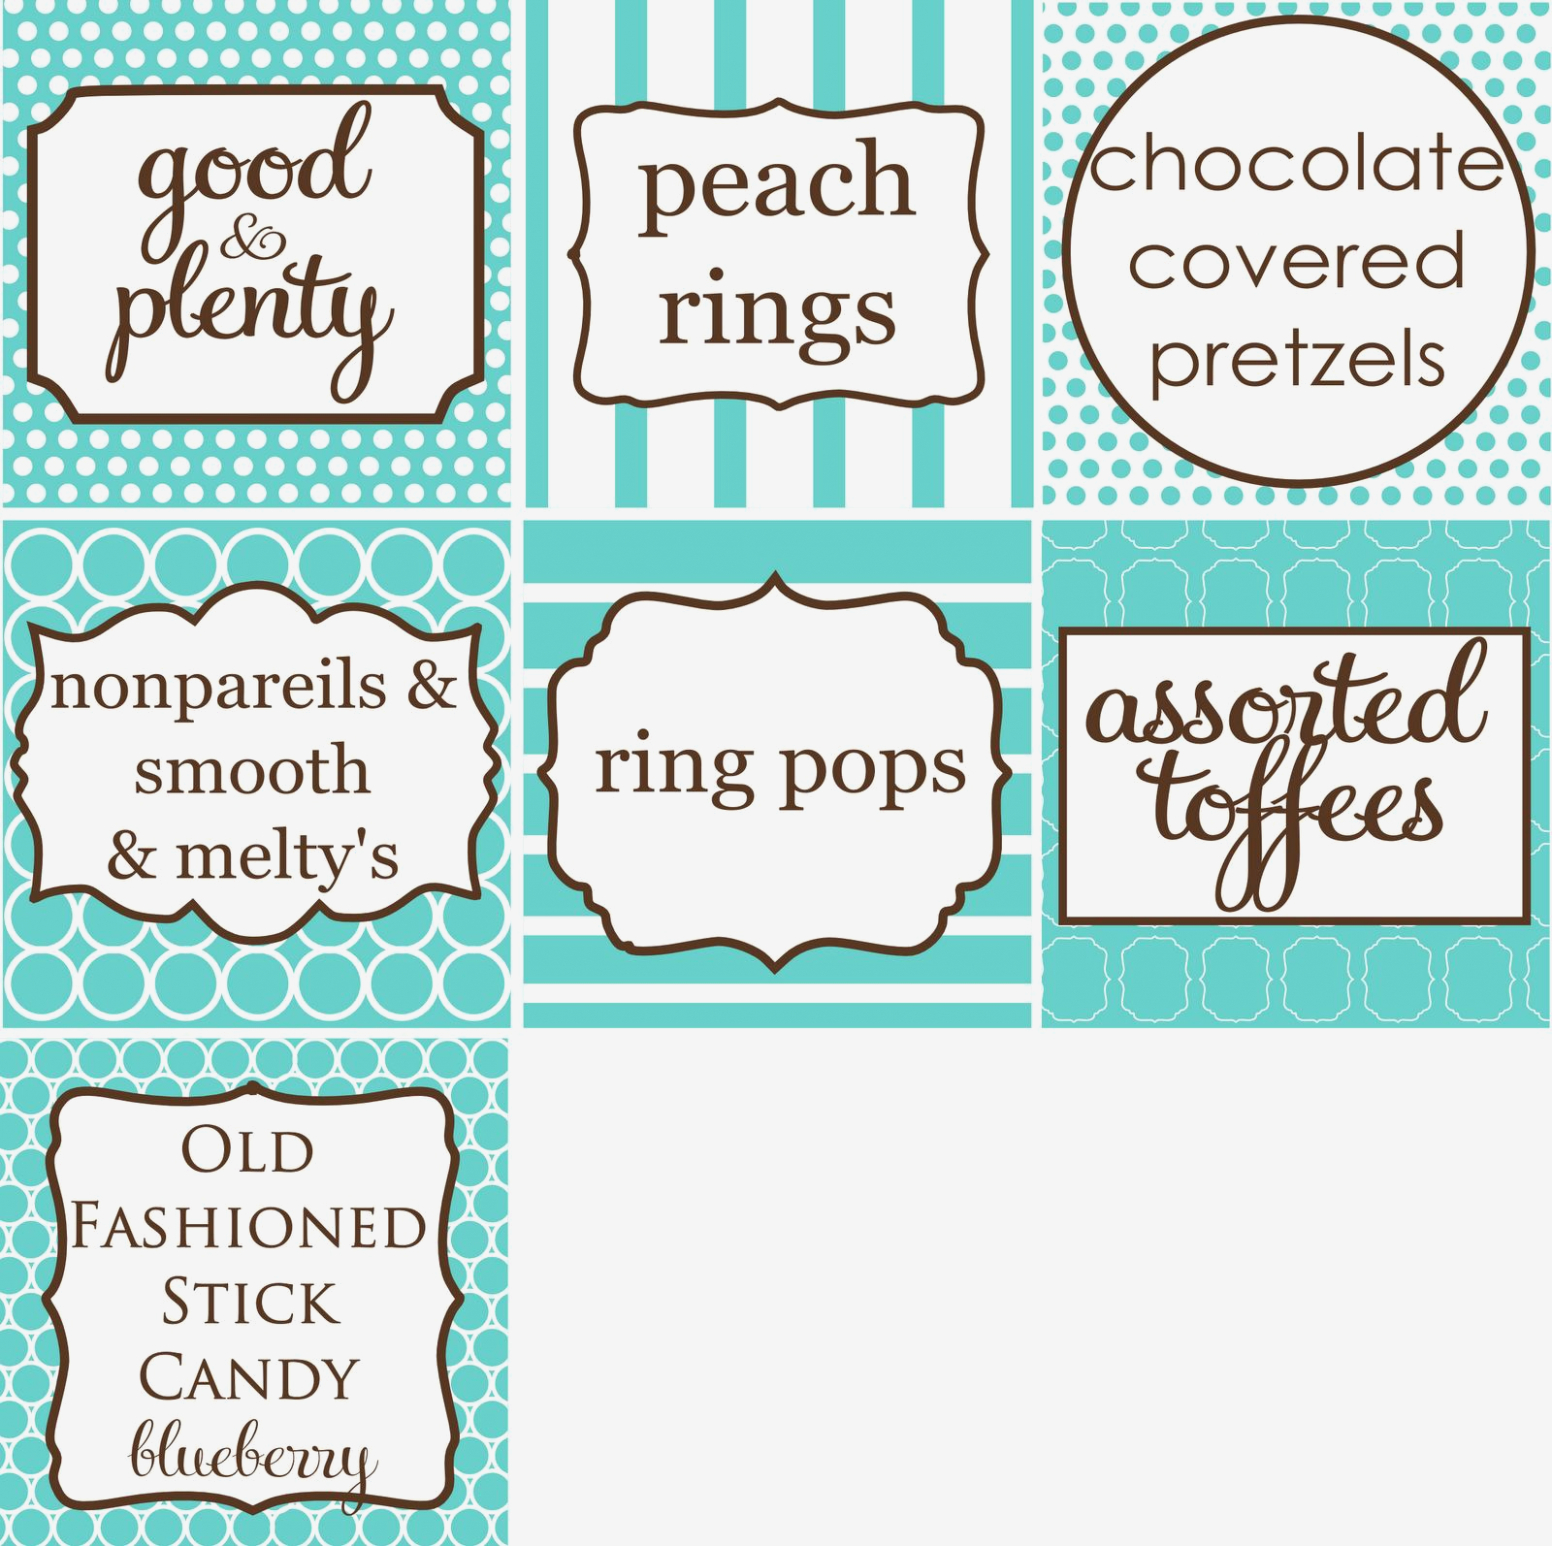 Free Printable Candy Buffet Labels Templates Download Now Index Of - Free Printable Candy Buffet Labels Templates